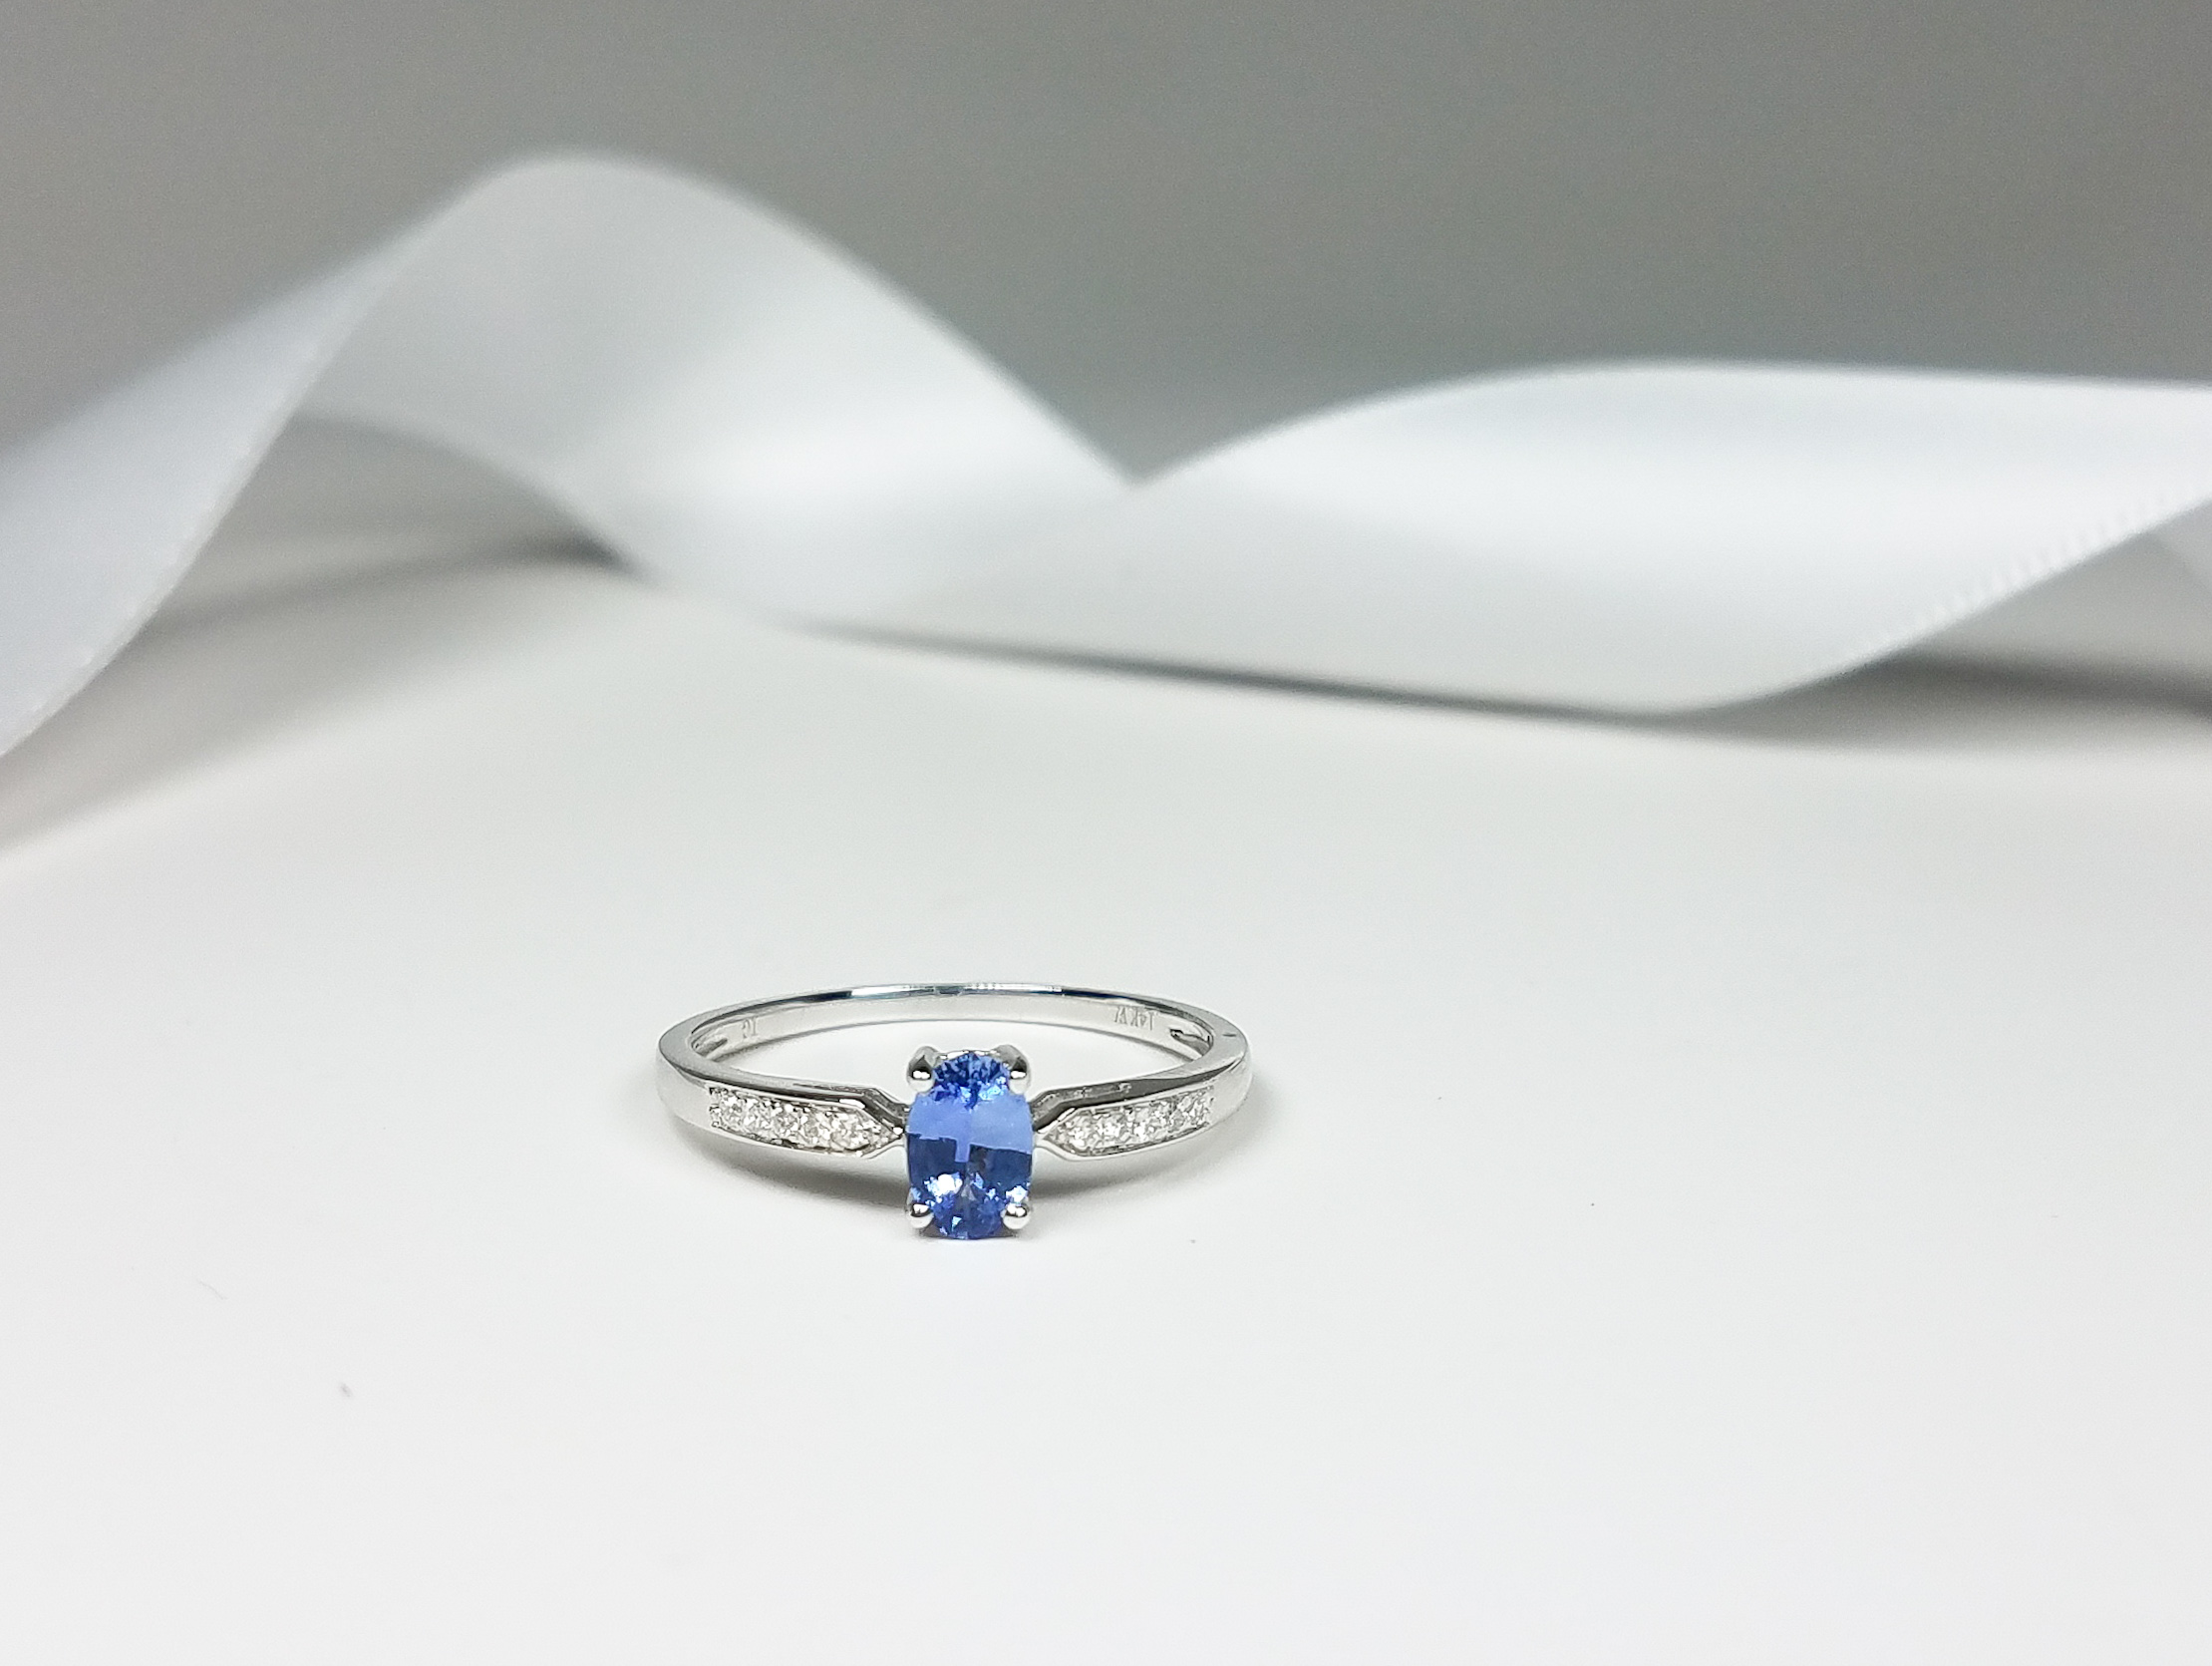 small_oval_sapphire_ring_redford_jewelers_holiday_2018.jpeg